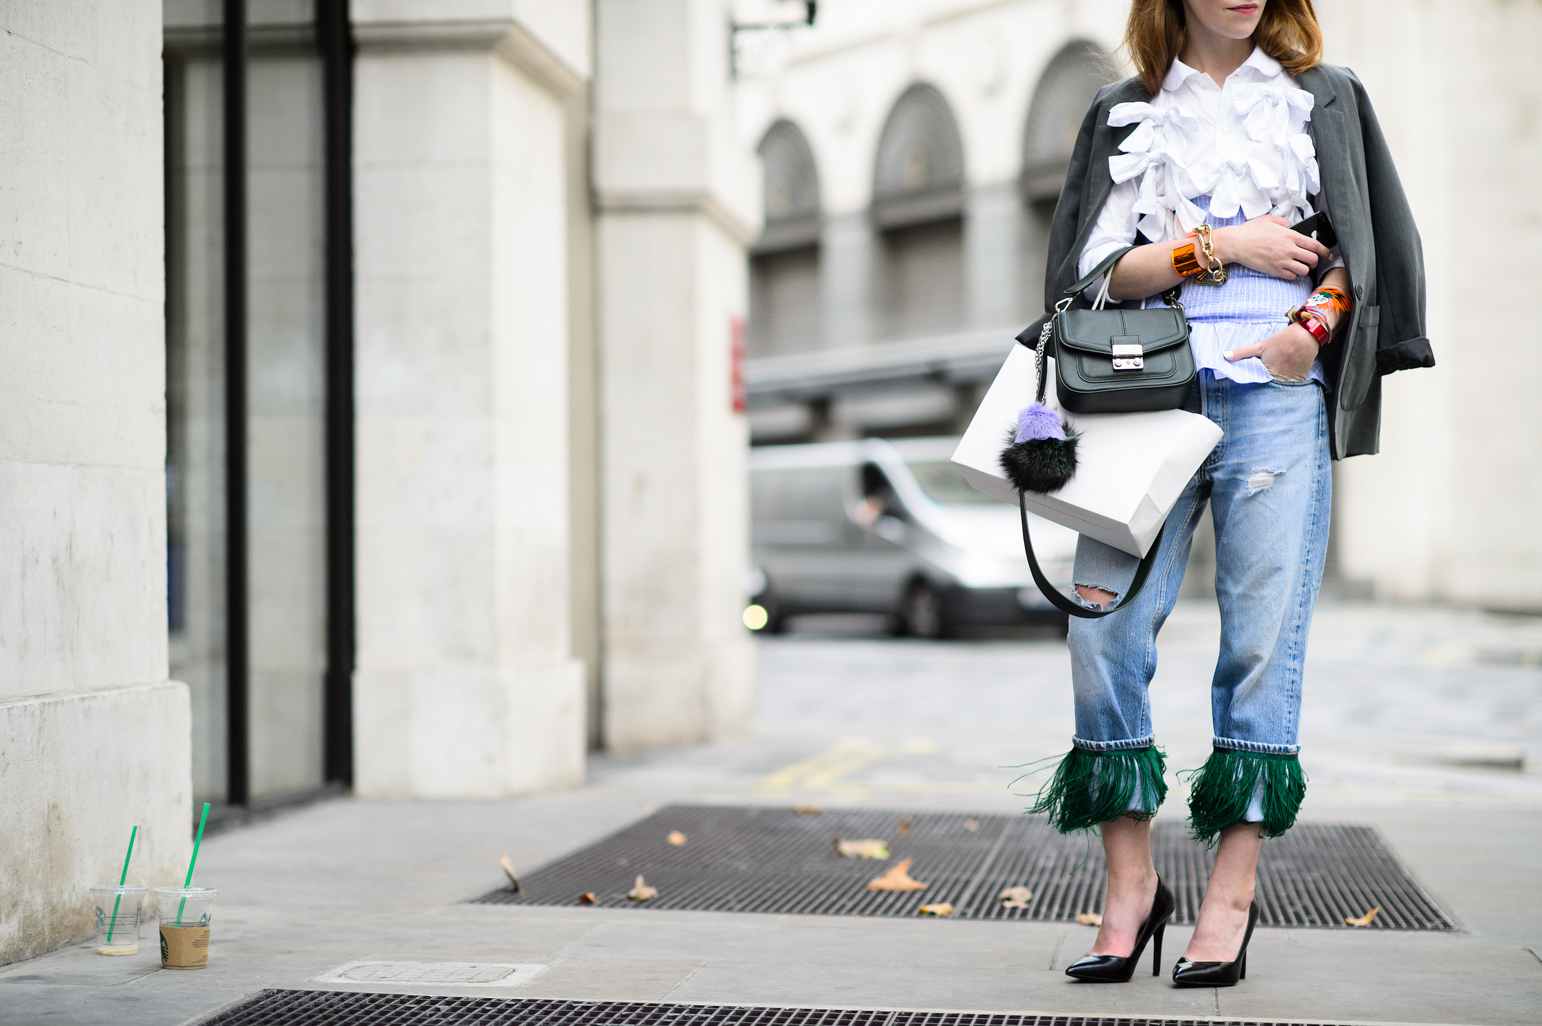 london-spring-2015-street-style-day-2-23